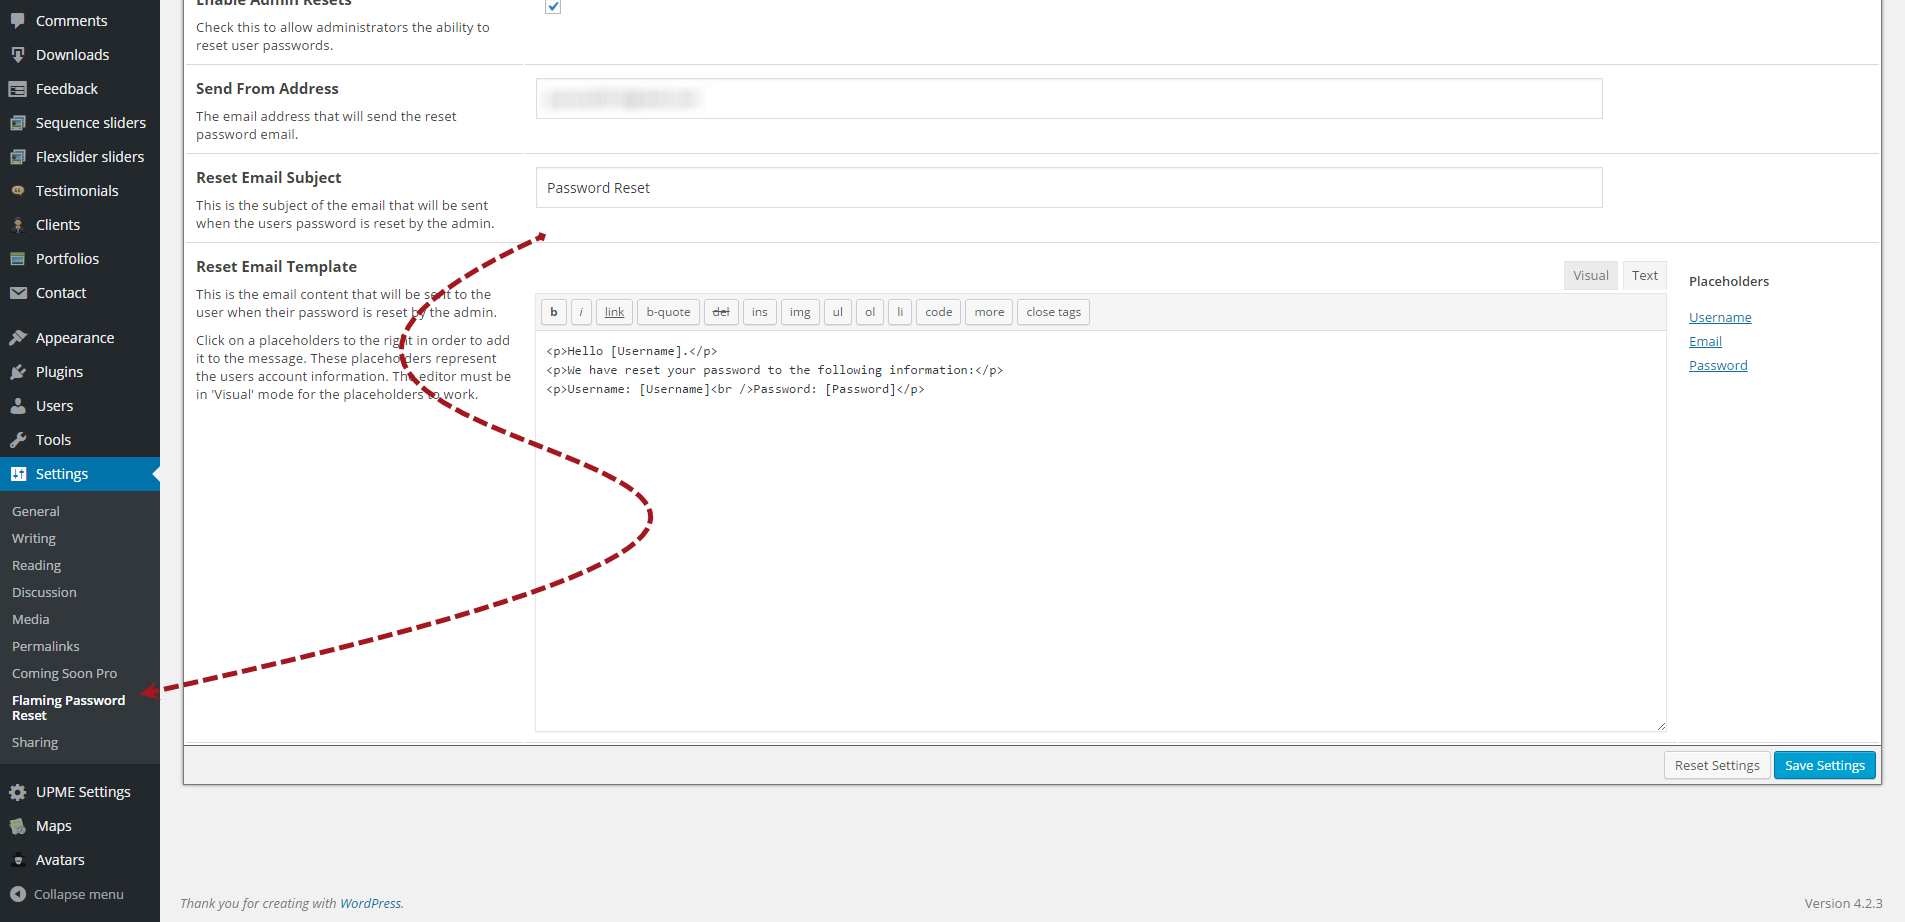 The settings page allows you to customize the emails going out to your users. This page showcases some shortcodes.